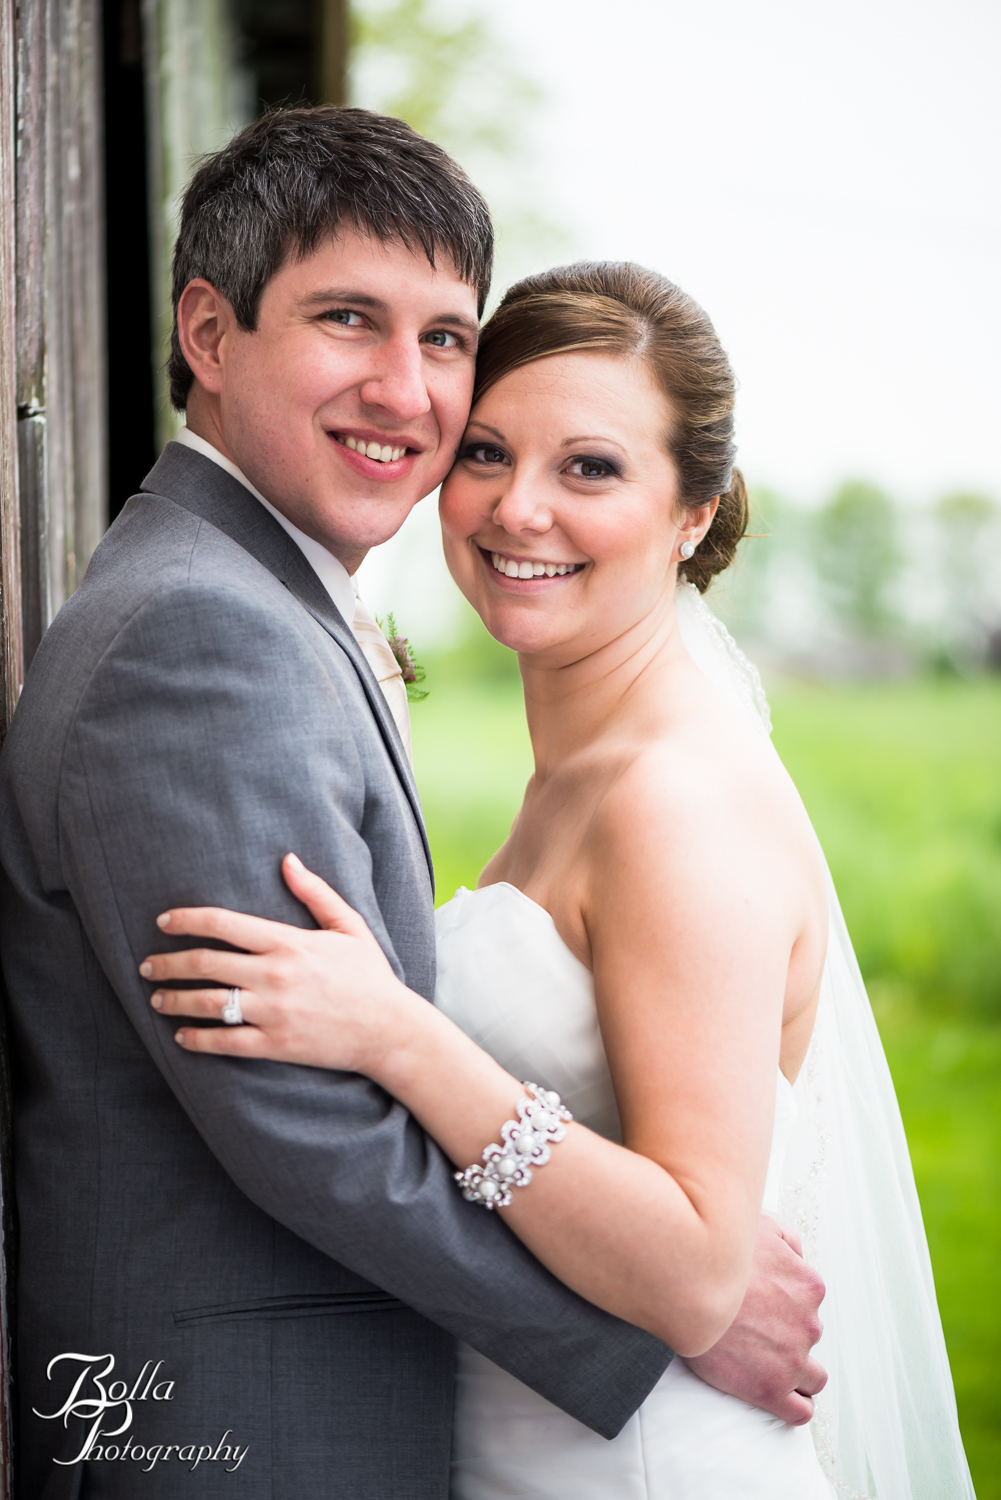 Bolla_Photography_St_Louis_wedding_photographer_Villa_Maire_Winery-0005.jpg